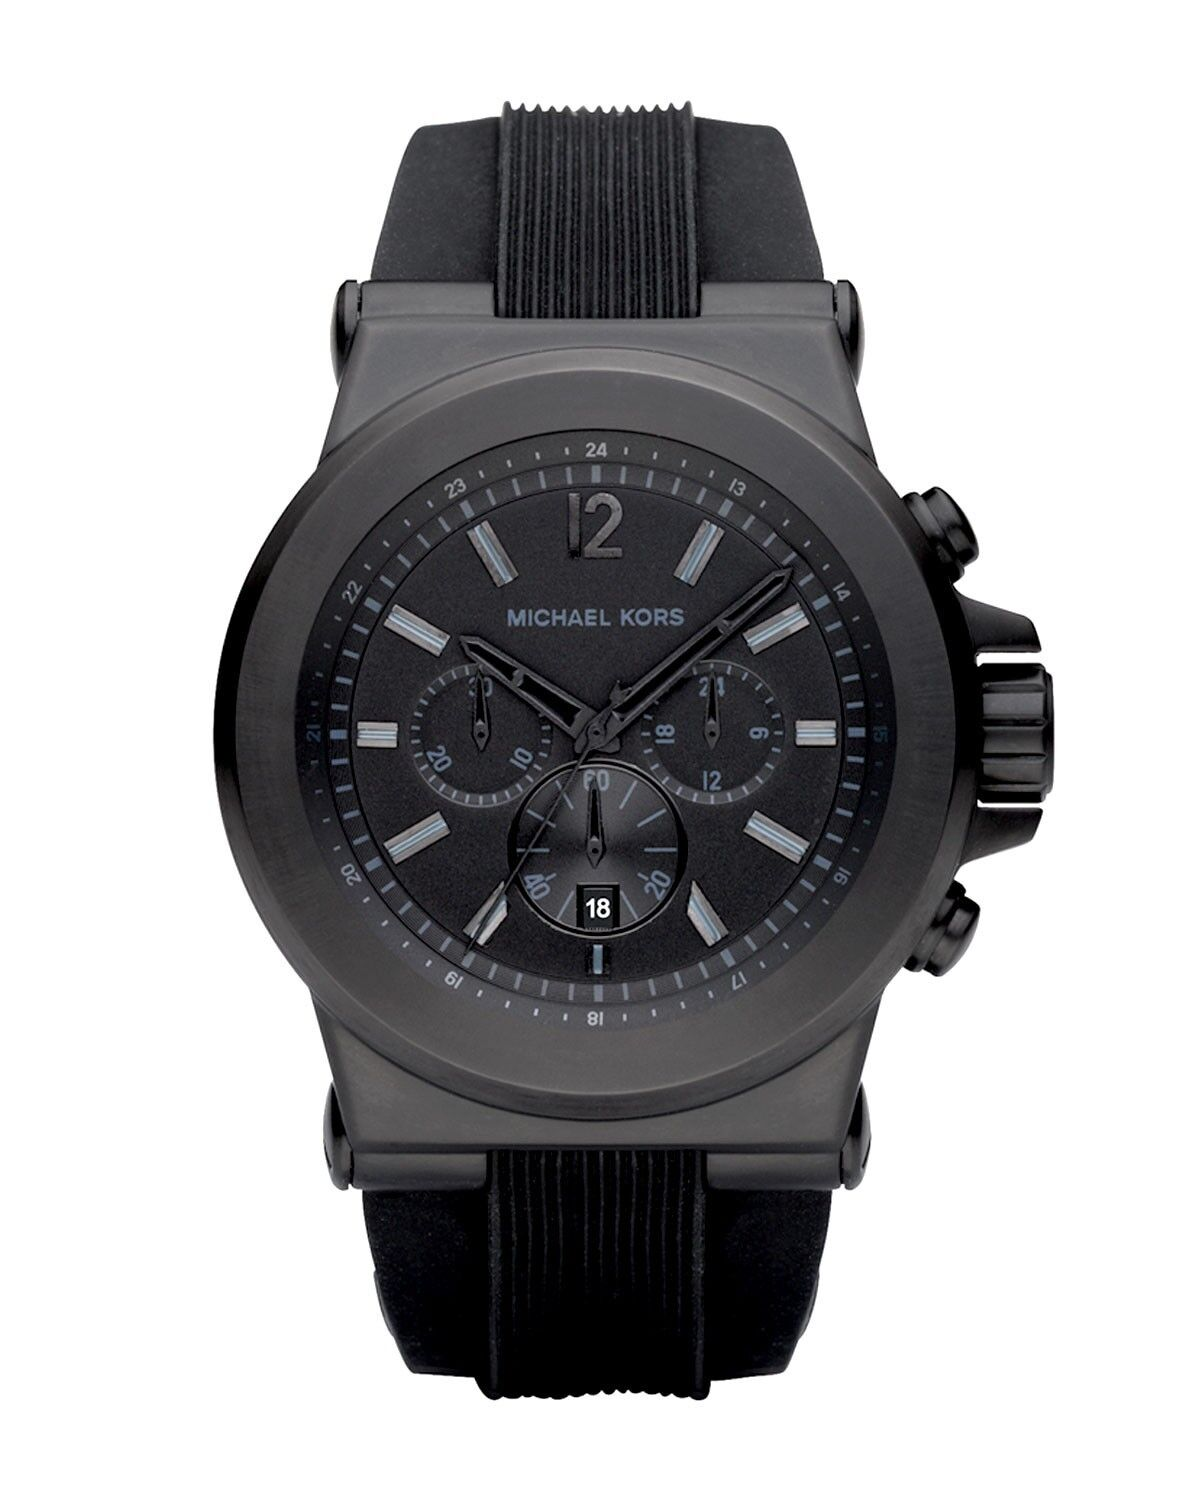 New Authentic Michael Kors Black Silicone Chronograph Mens Watch MK8152